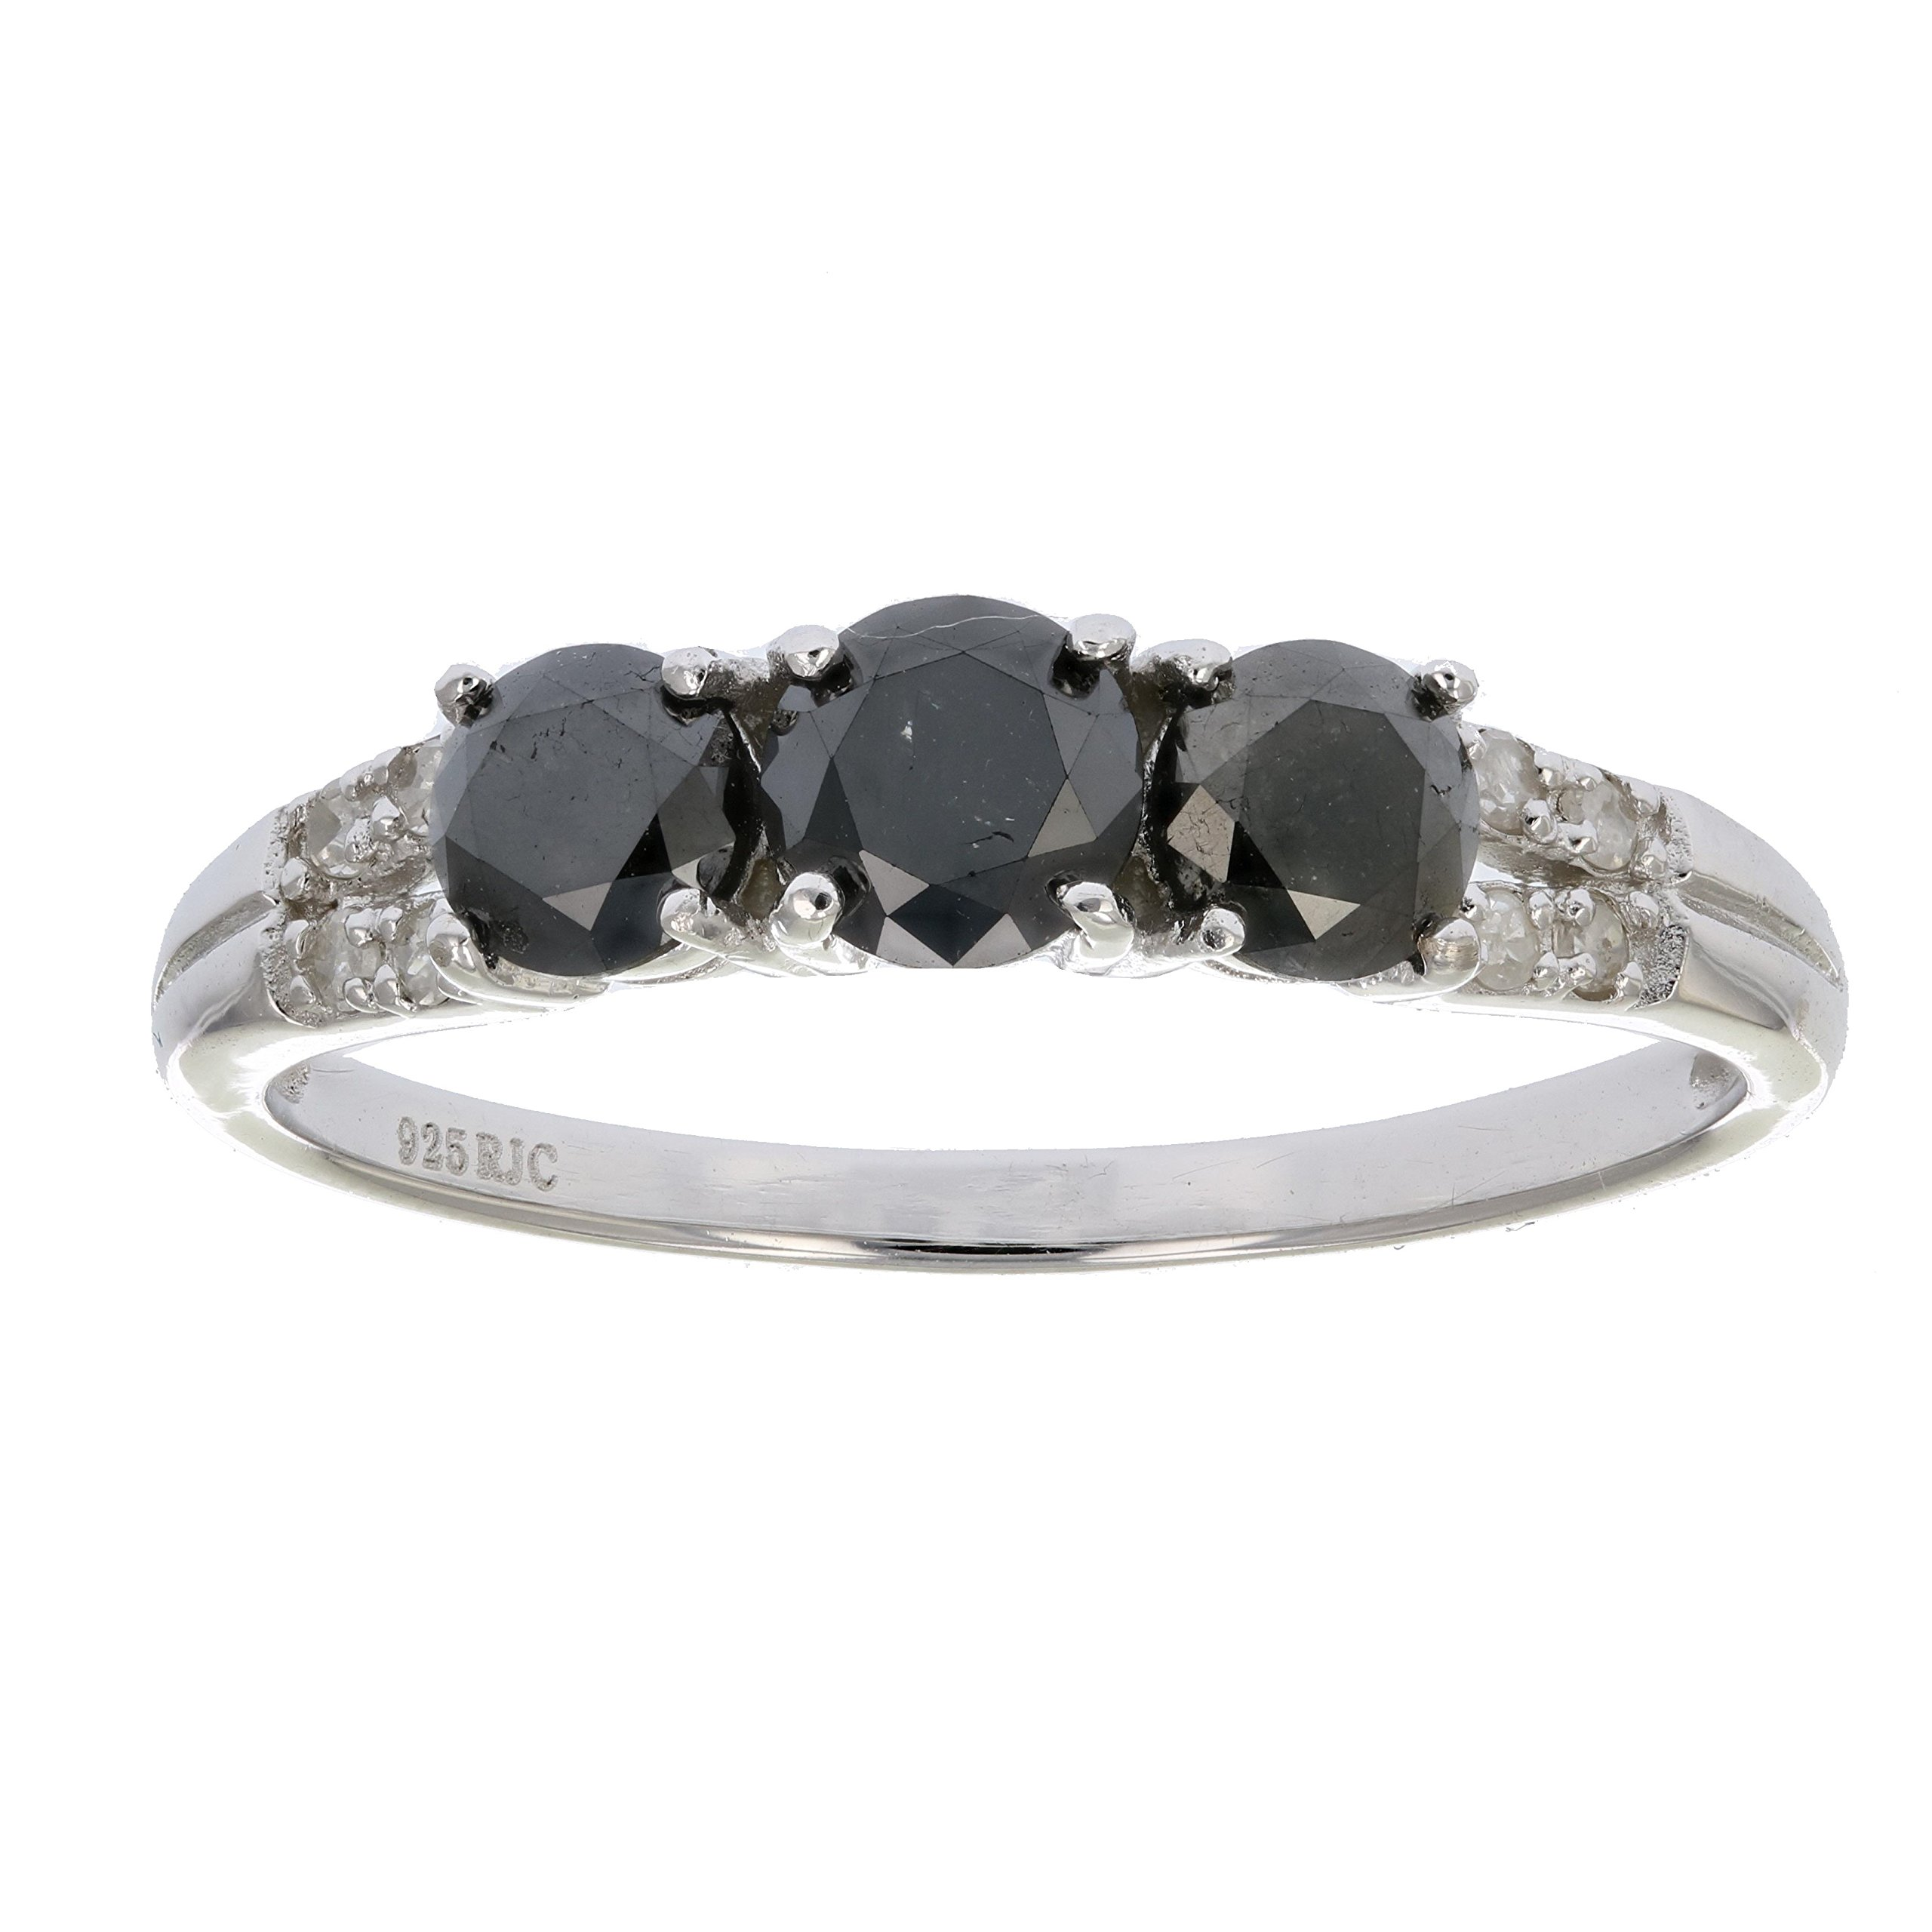 1 CT 3 Stone Black Diamond Ring Sterling Silver In Size 8